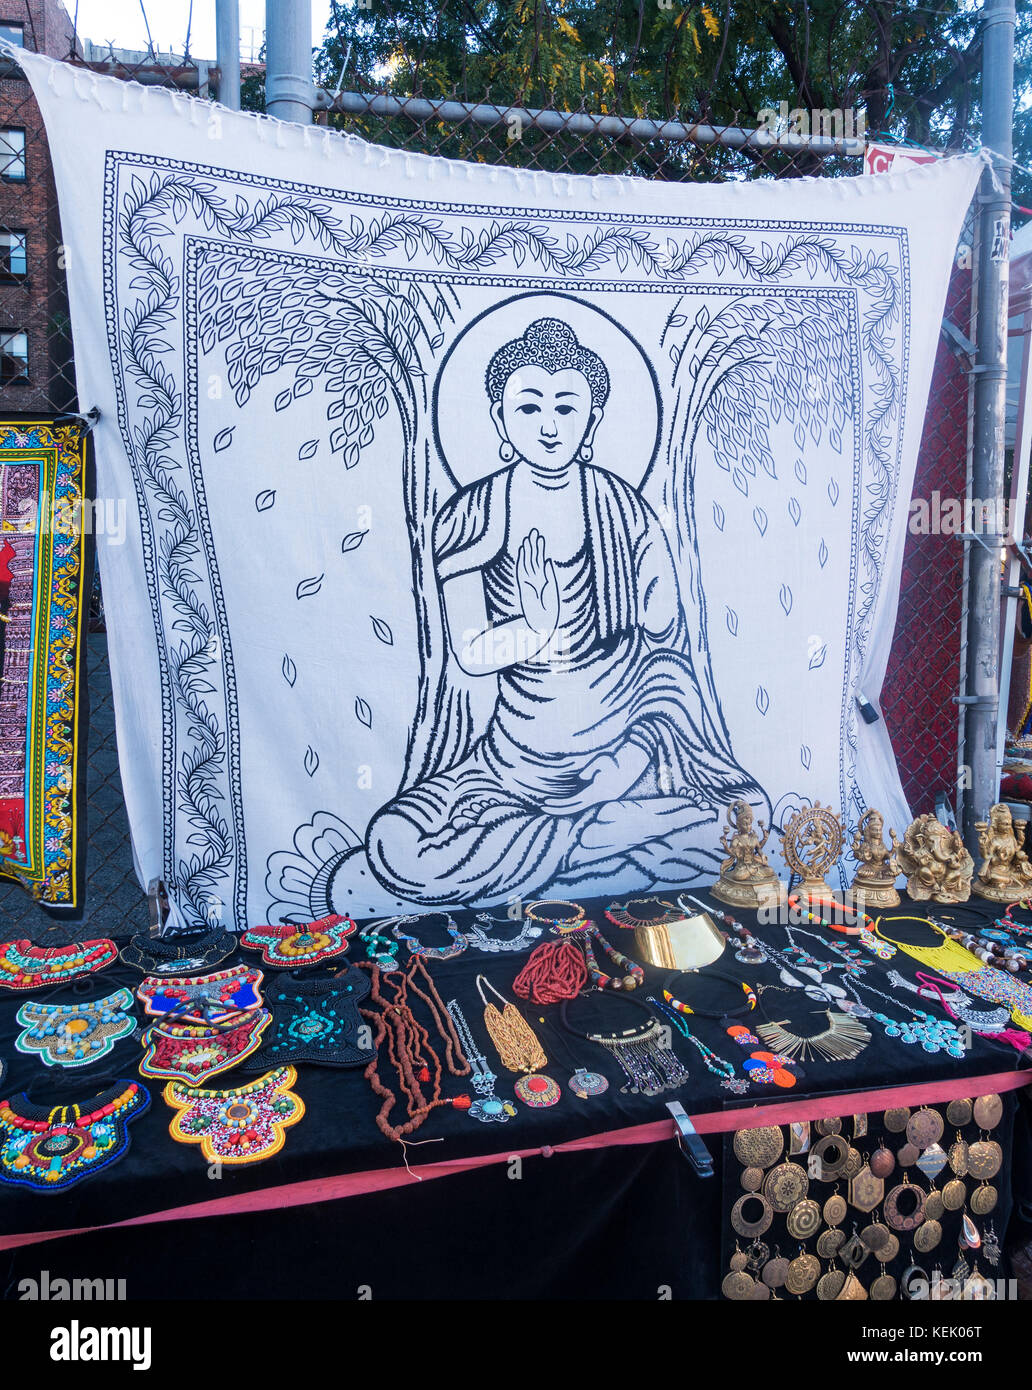 Indian Buddhism tourist items for sale at an outdoor mall in New York City - Stock Image